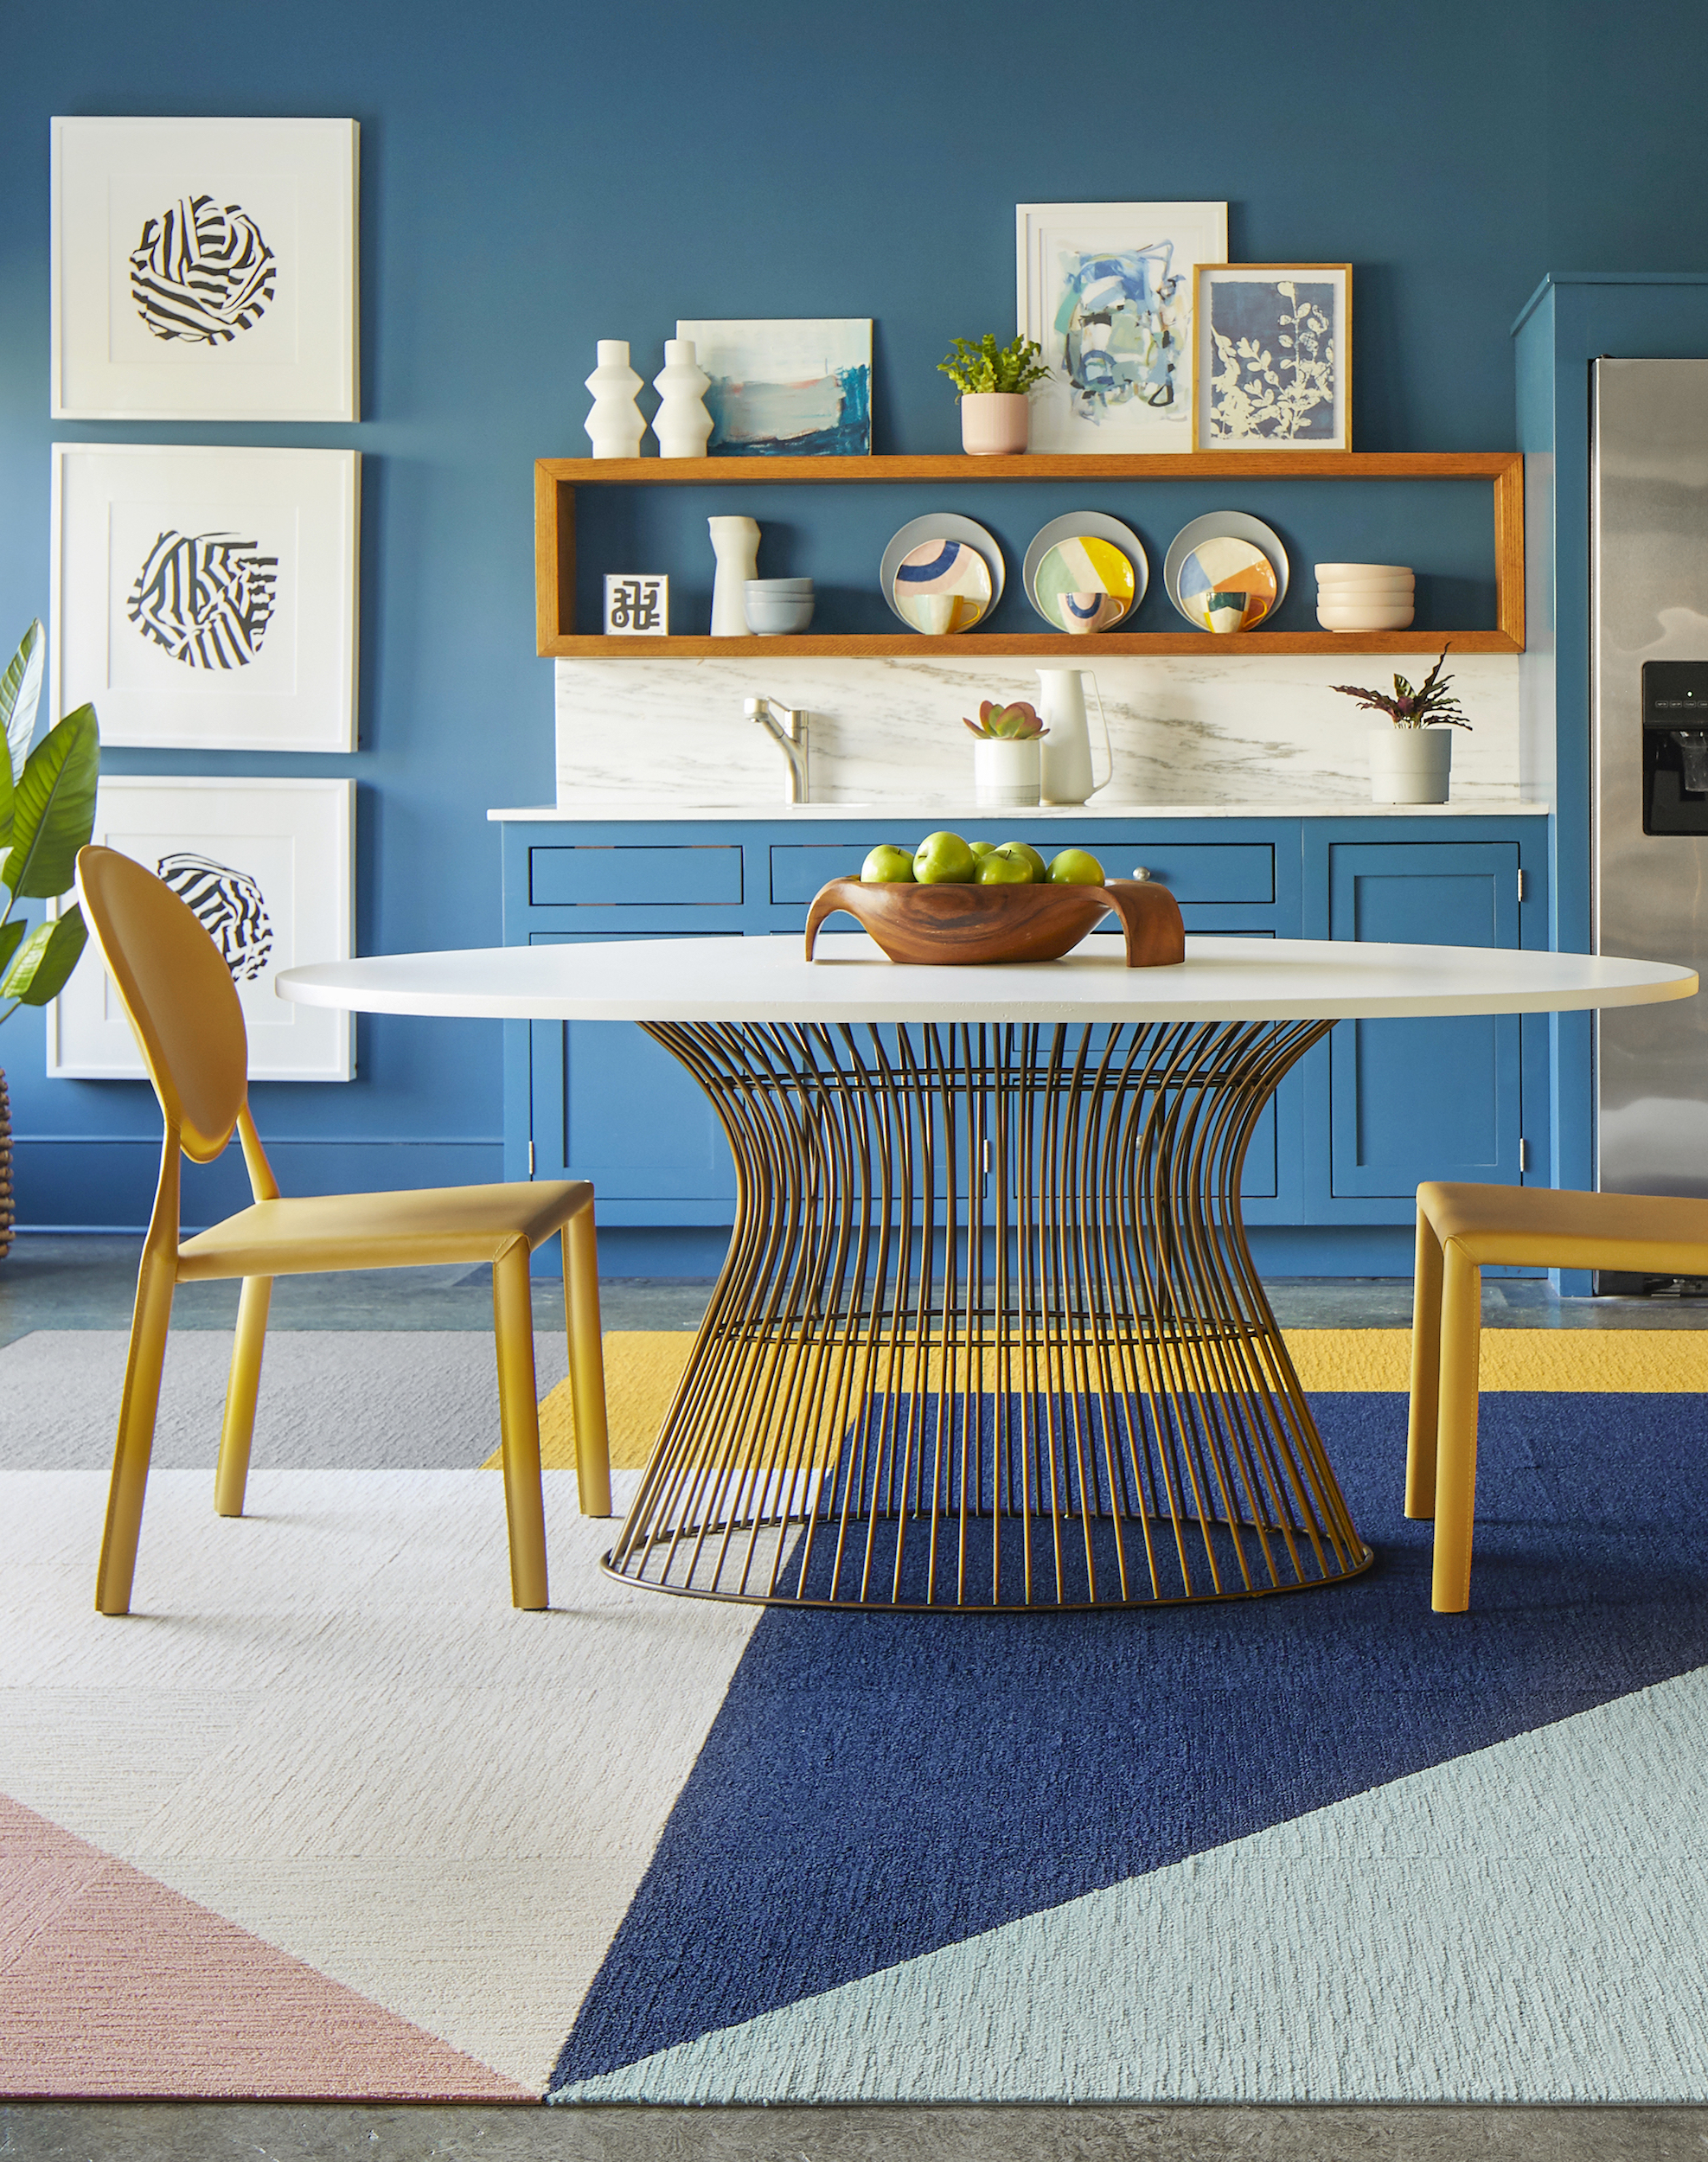 FLOR Made You Look area rug in Blush, Bone, Grey, Marigold, Indigo, and Seafoam, yellow chairs, and a metal dining table.